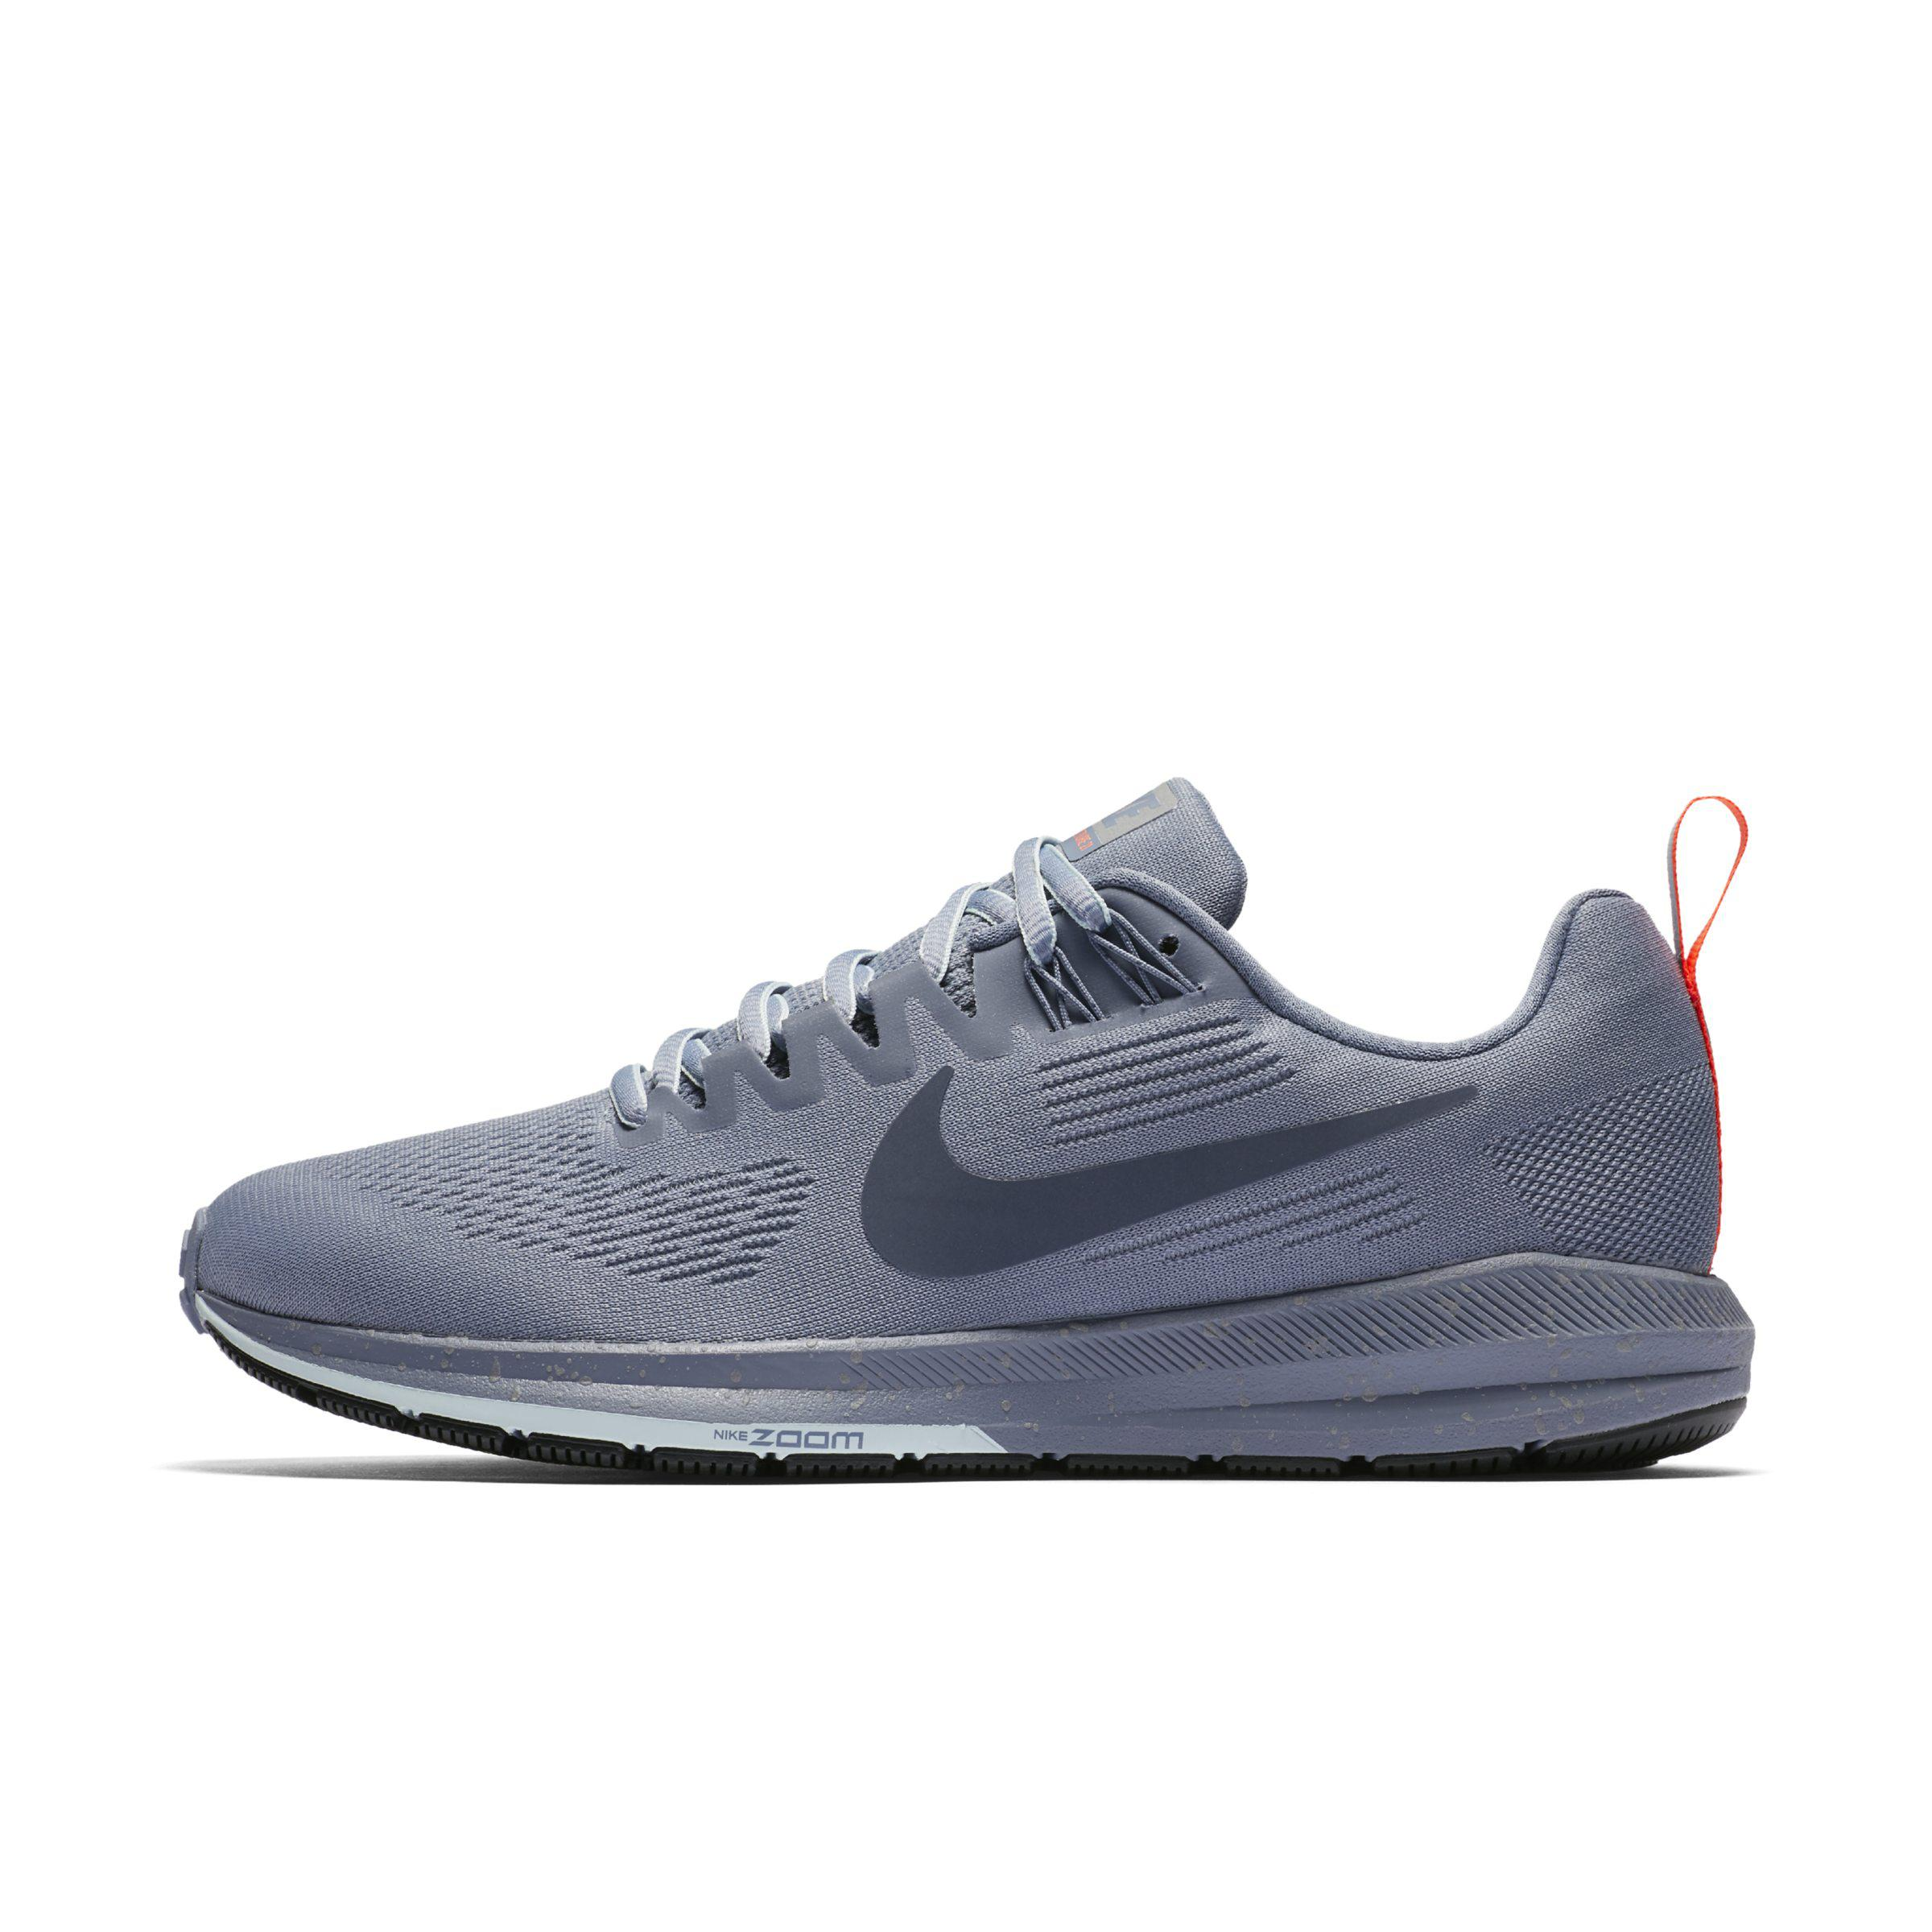 Nike Air Zoom Structure 21 Shield Running Shoe in Blue - Lyst bbdd8c638